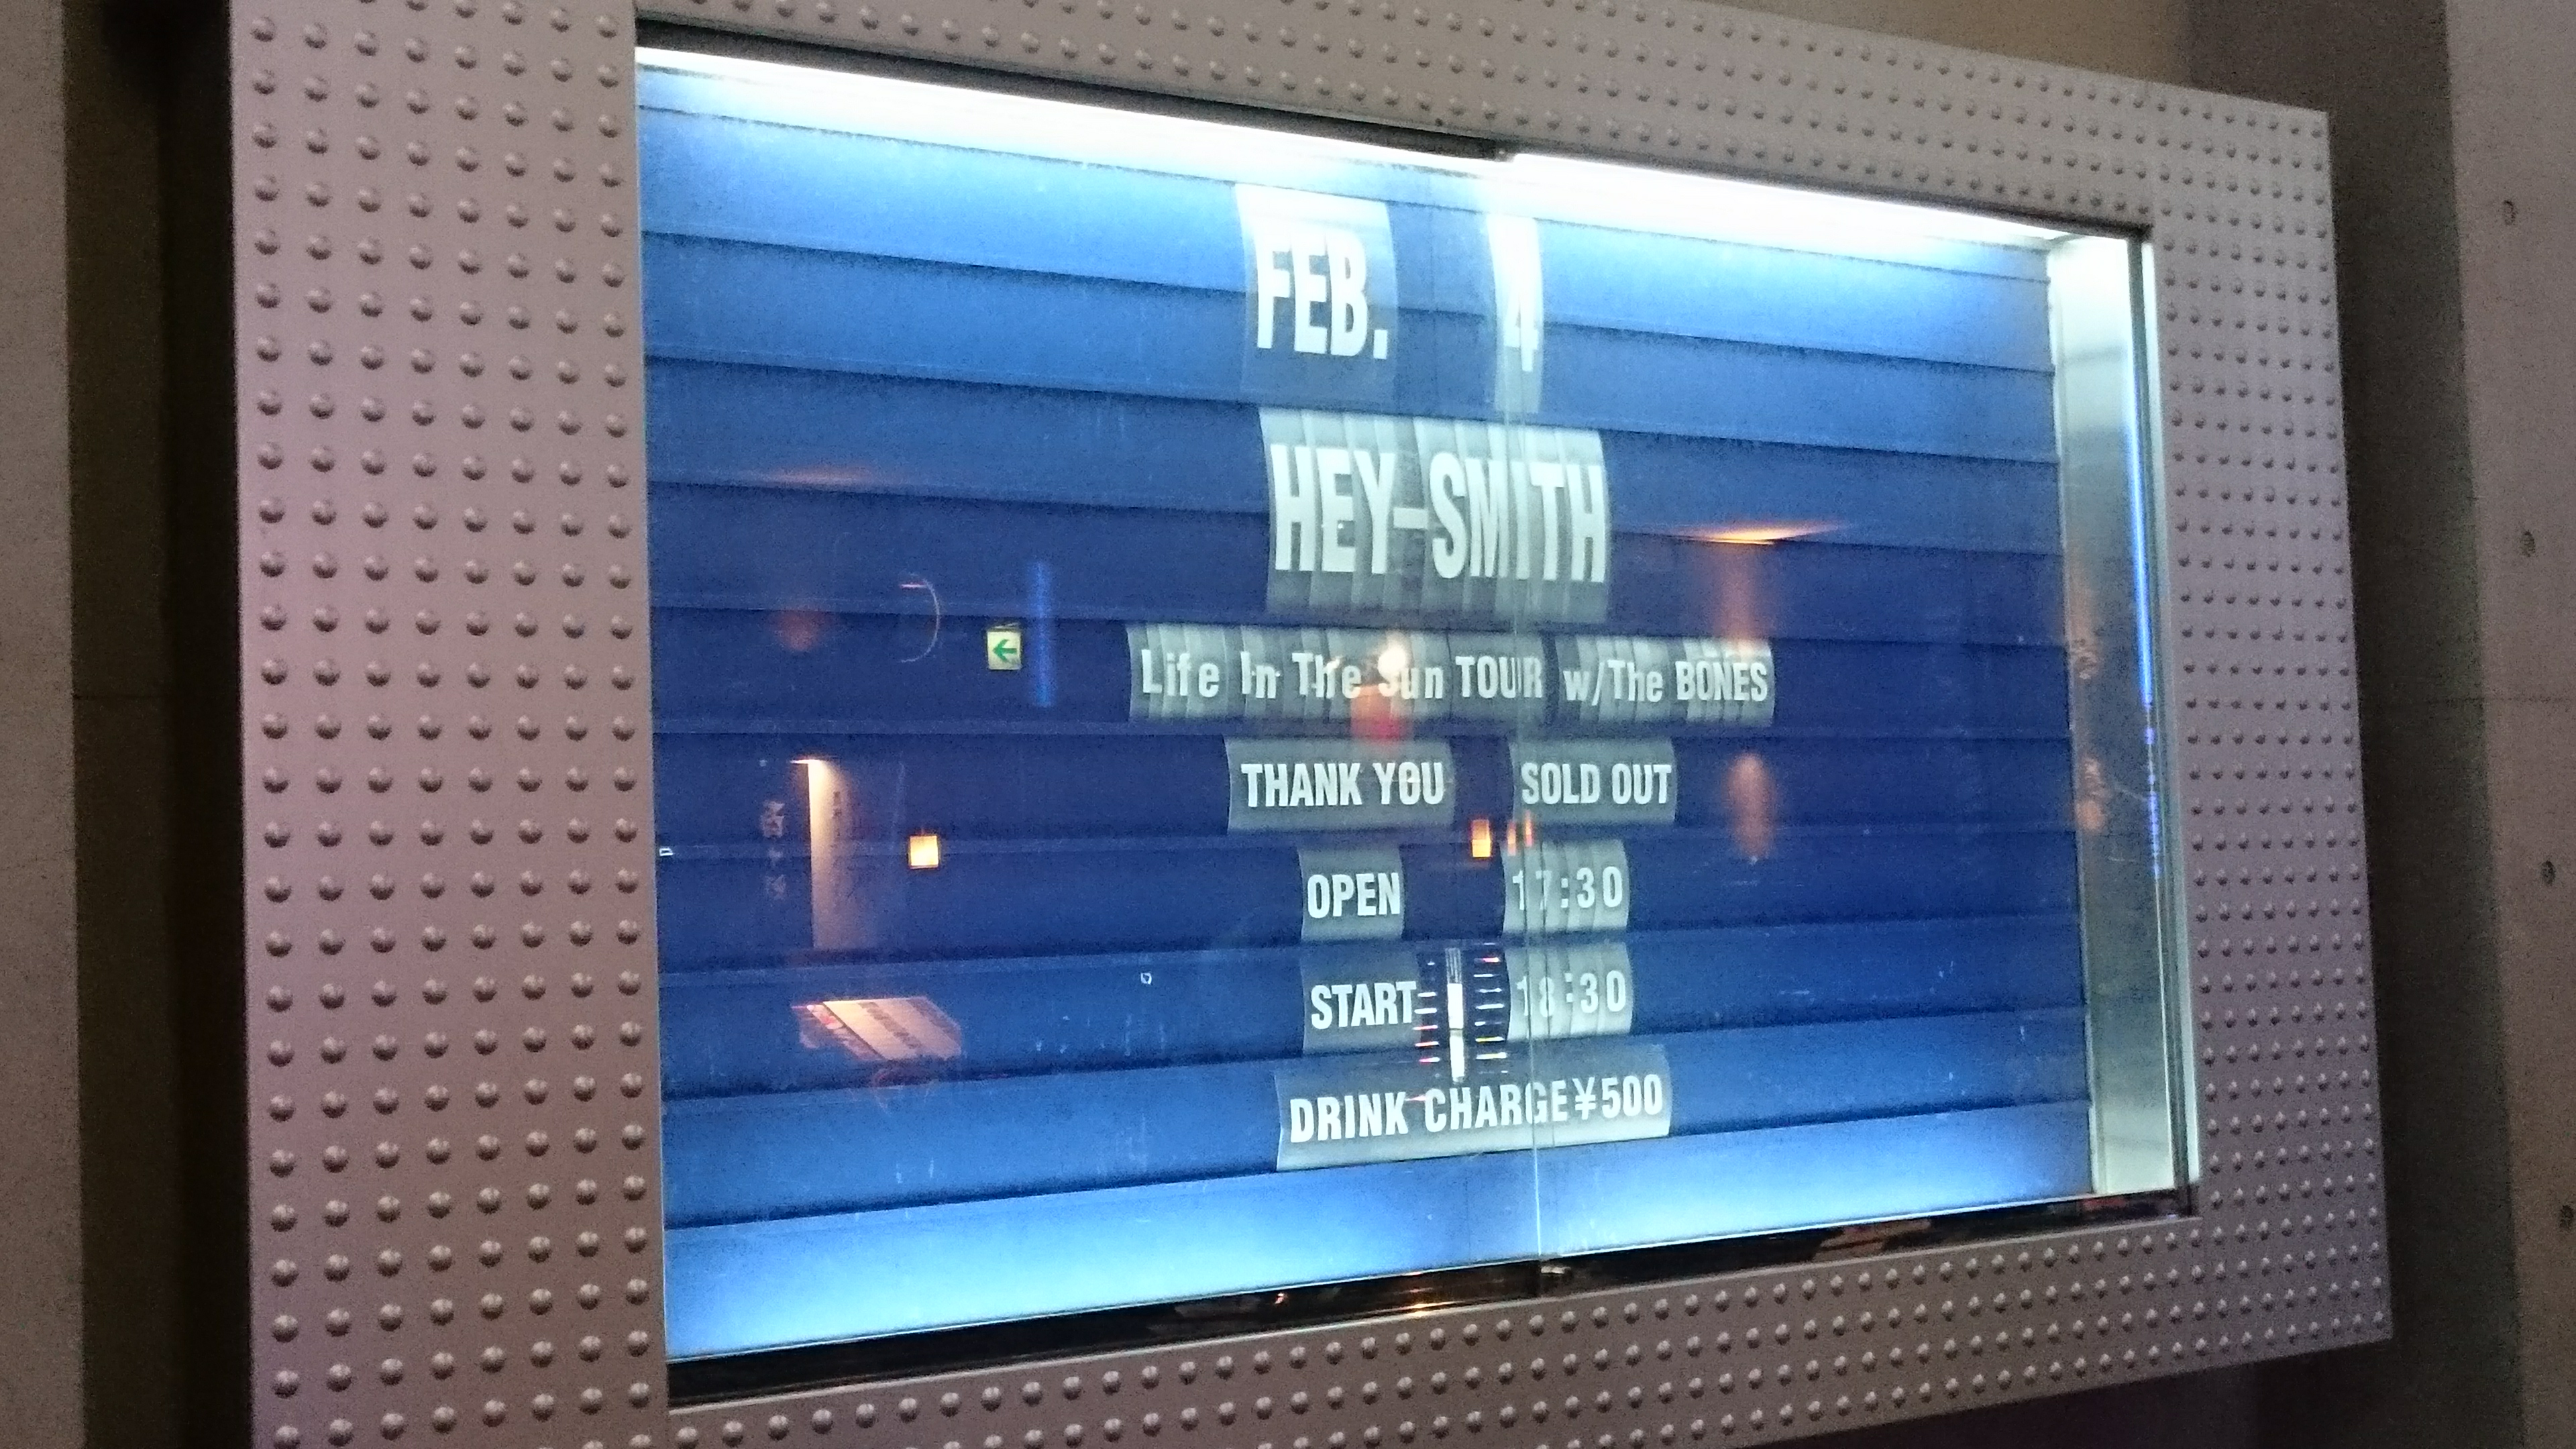 """HEY-SMITH """"Life In The Sun Tour"""" in 川崎チッタが最高だった話"""